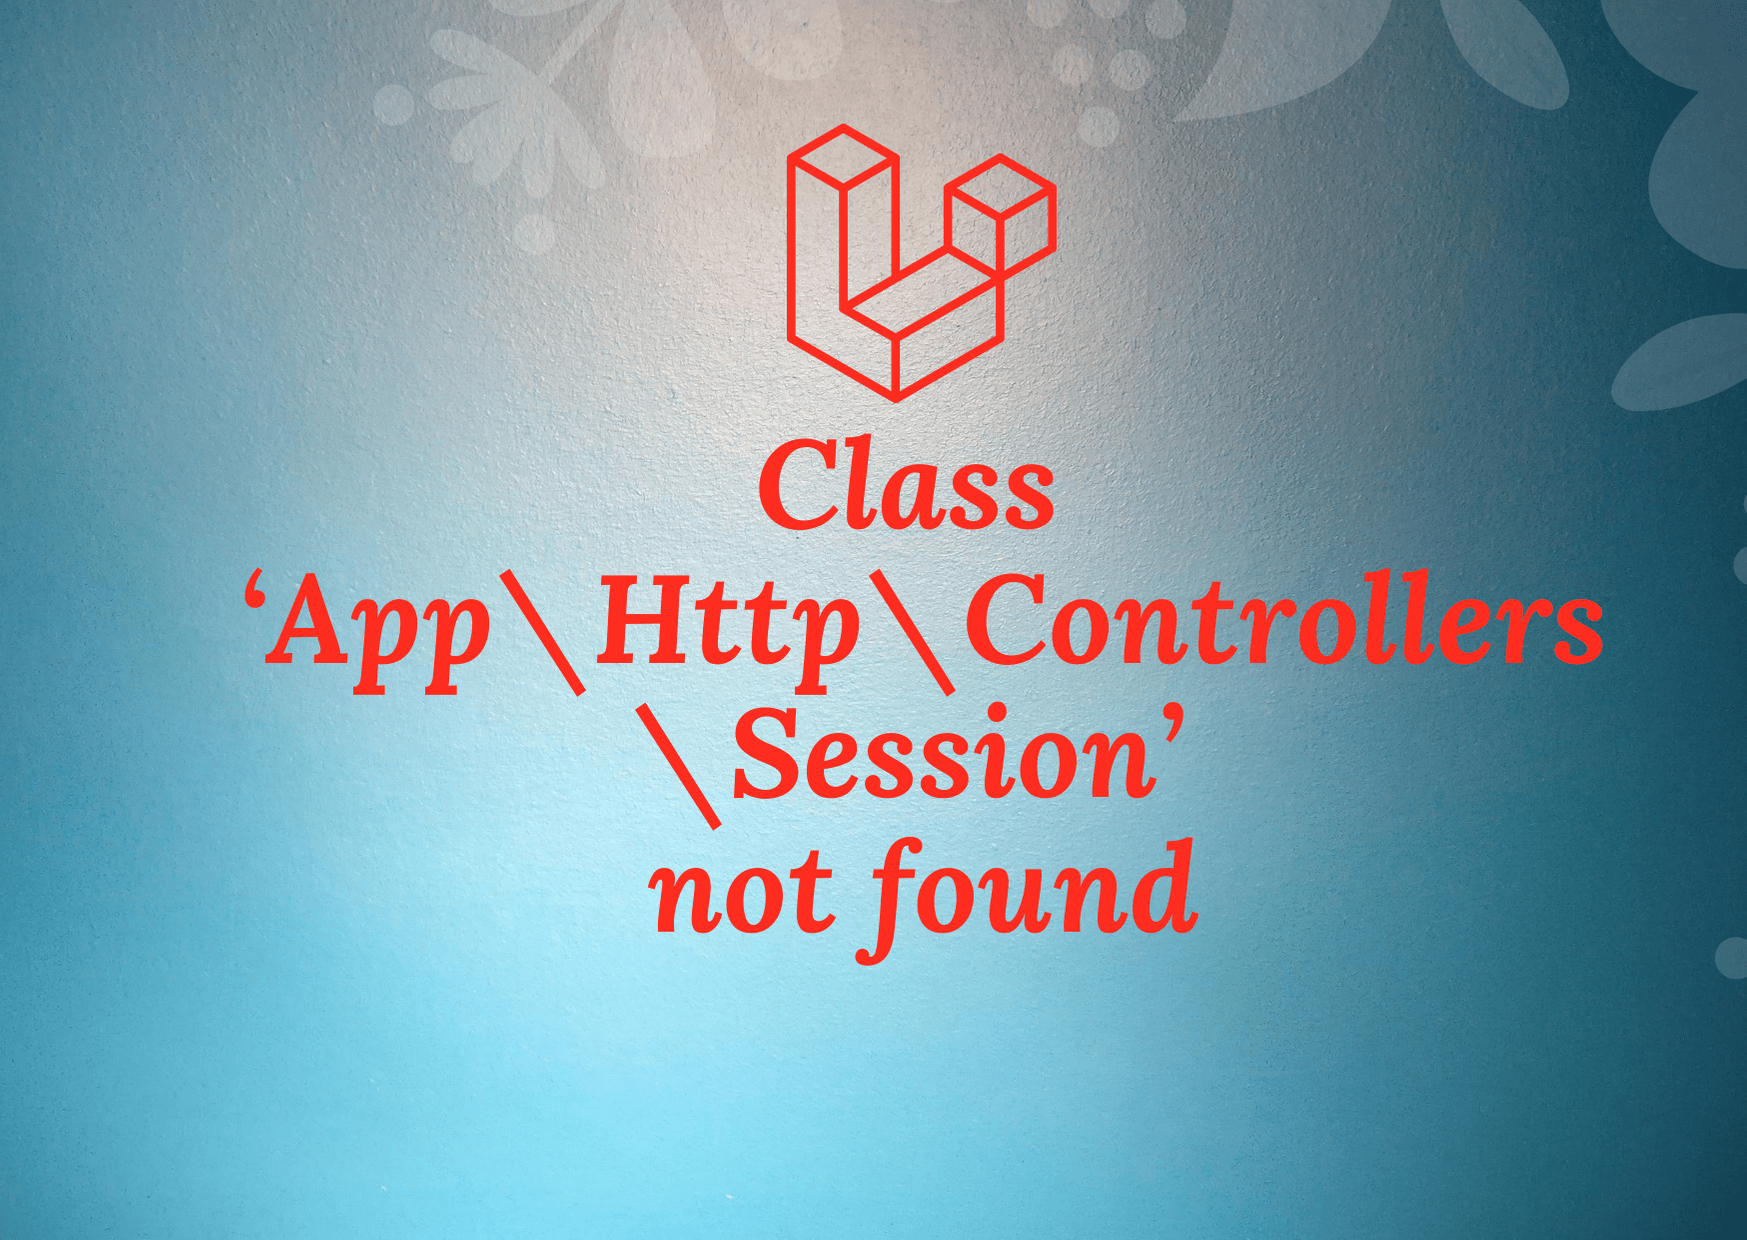 Class 'App\Http\Controllers\Session' not found in laravel